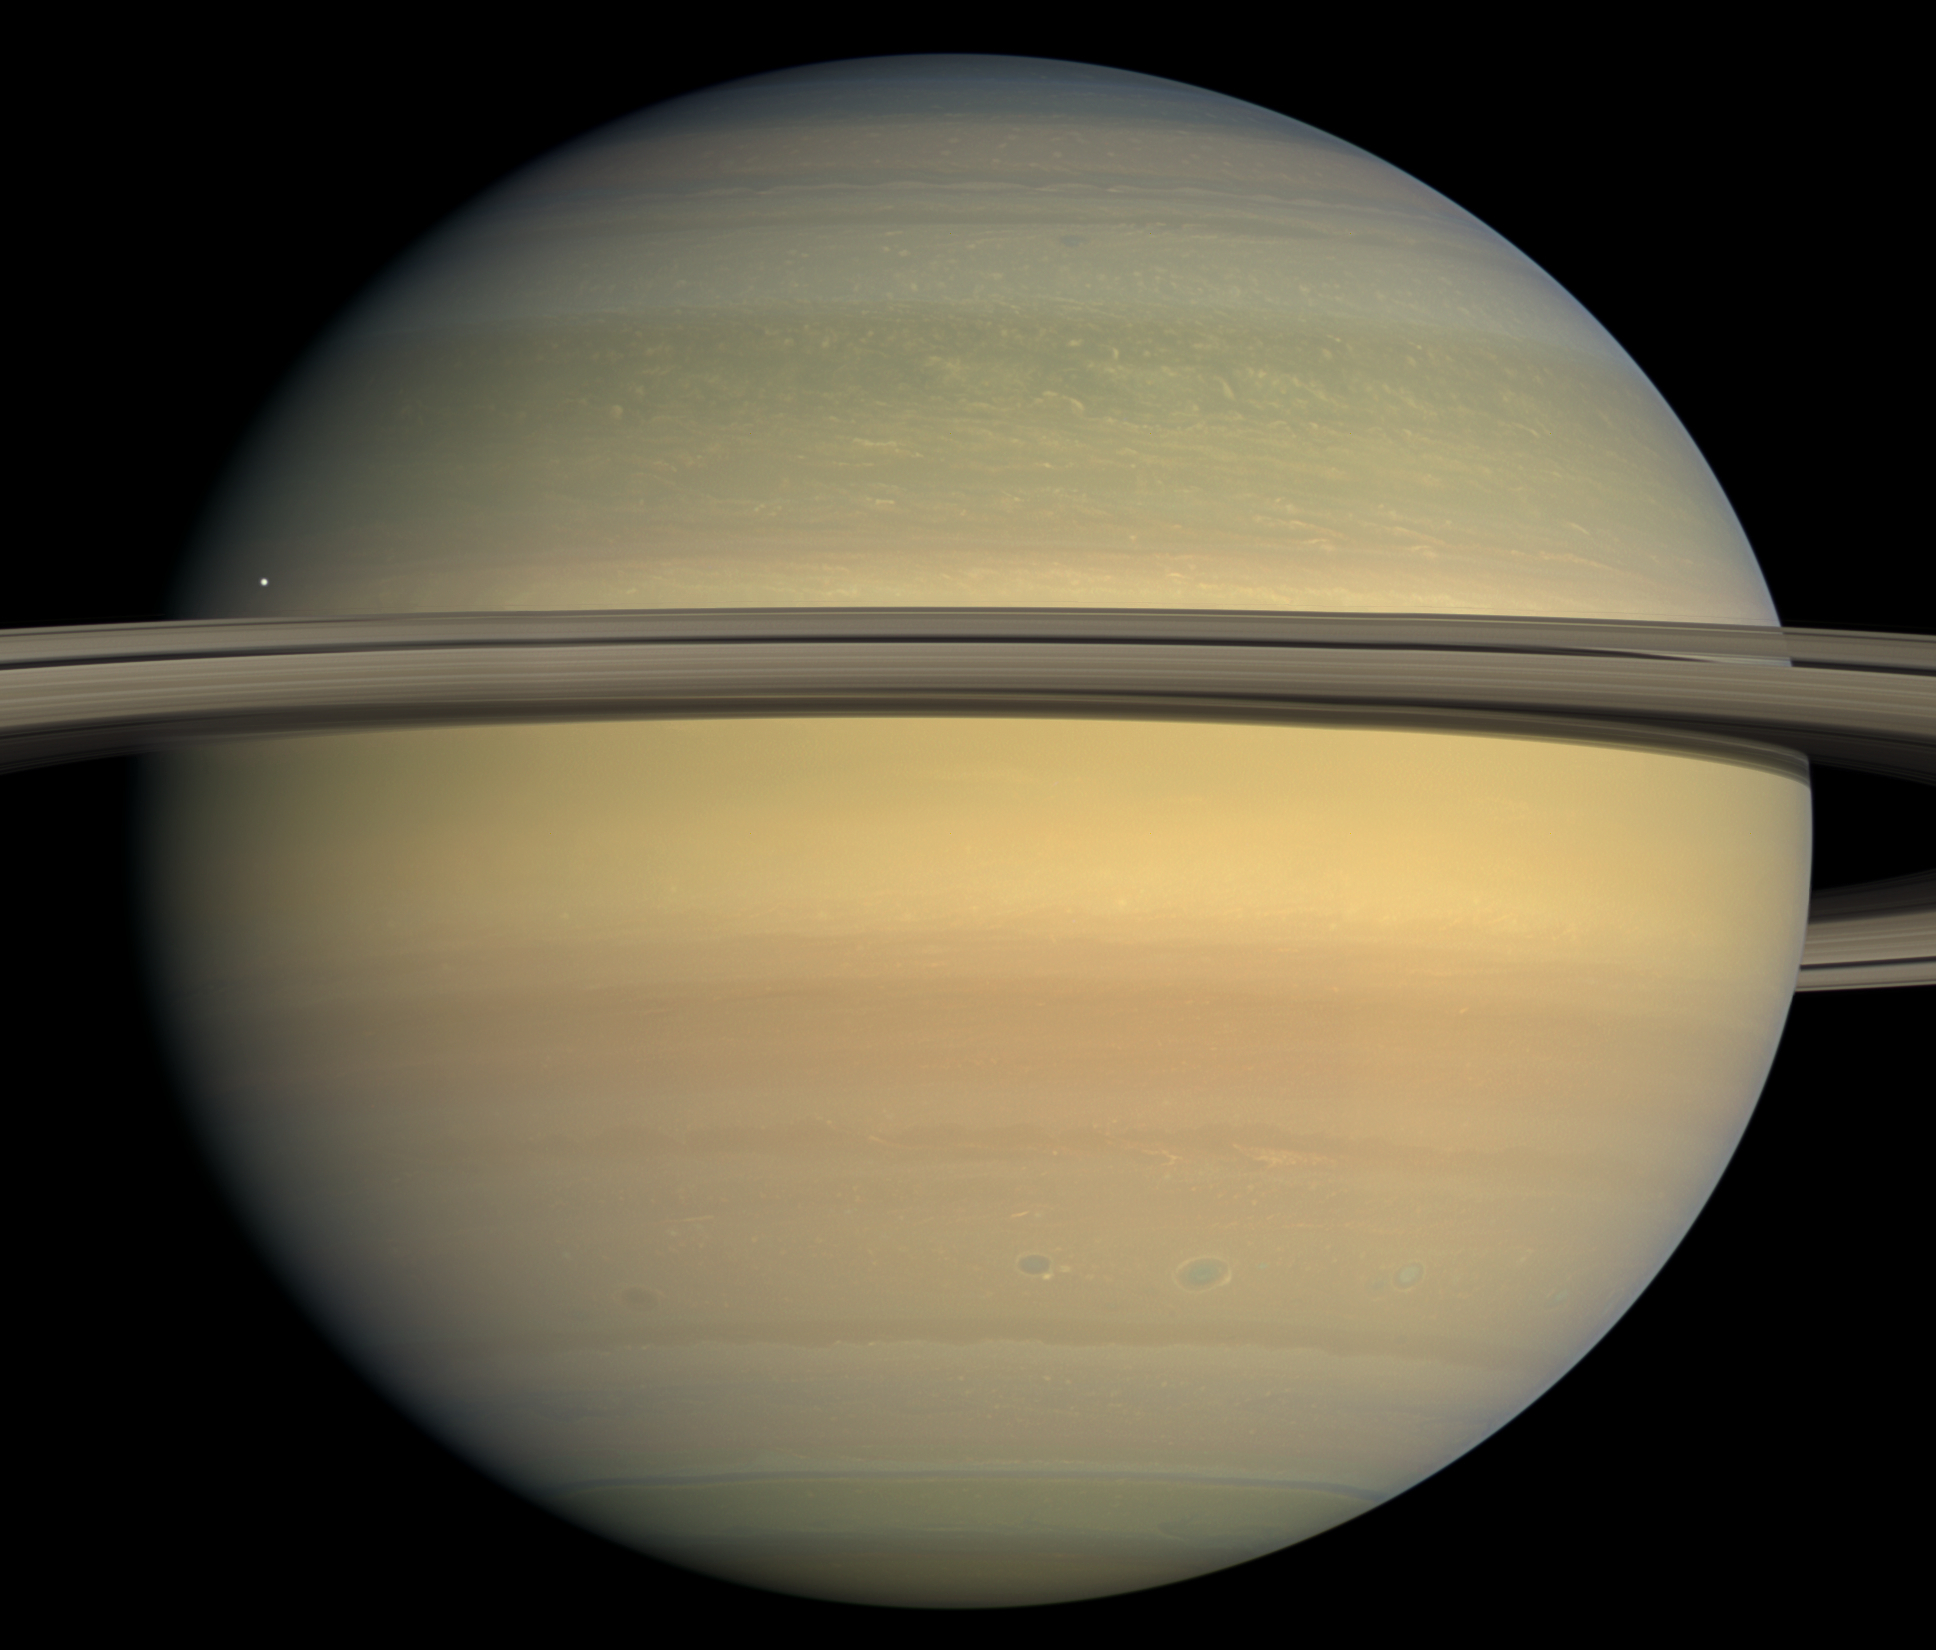 saturn planet pictures real life - photo #7